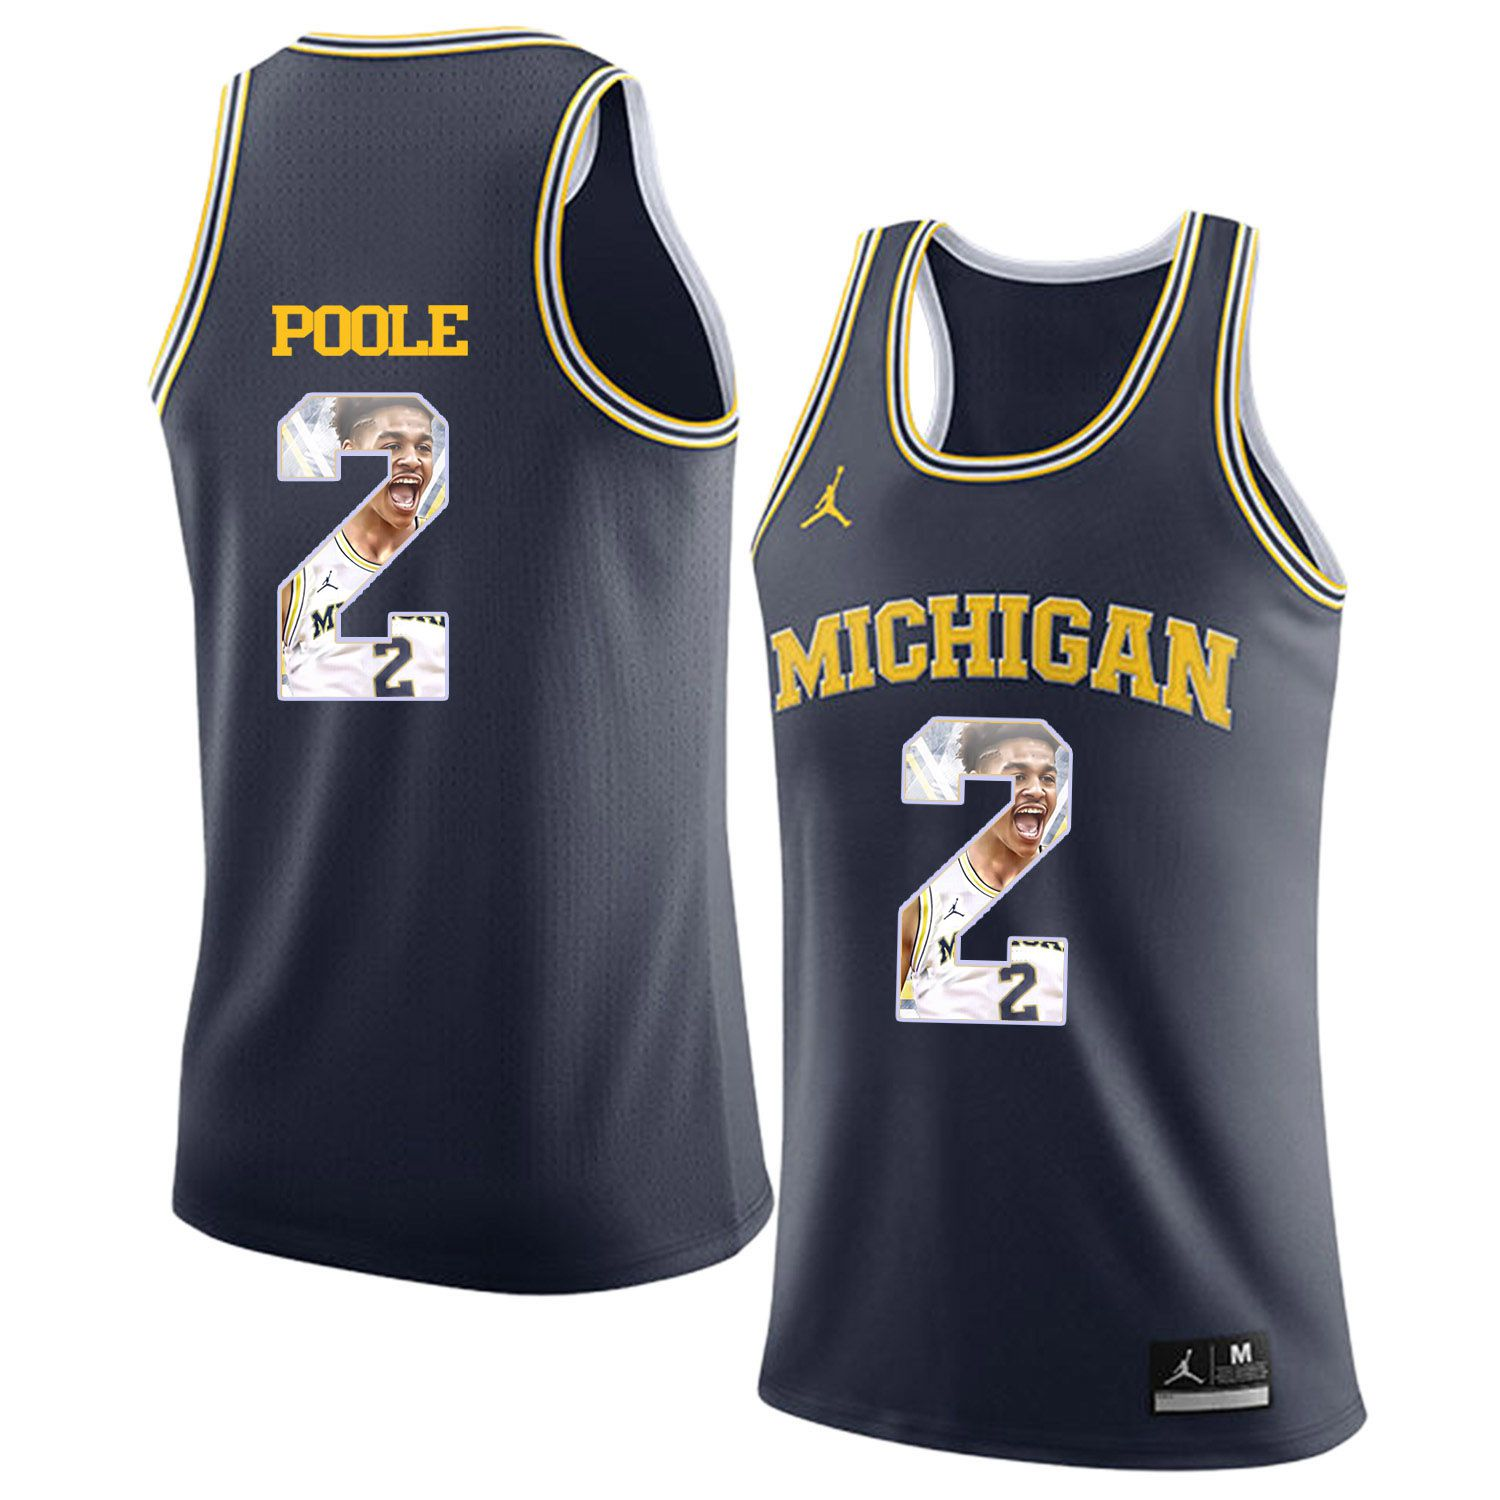 Men Jordan University of Michigan Basketball Navy 2 Poole Fashion Edition Customized NCAA Jerseys